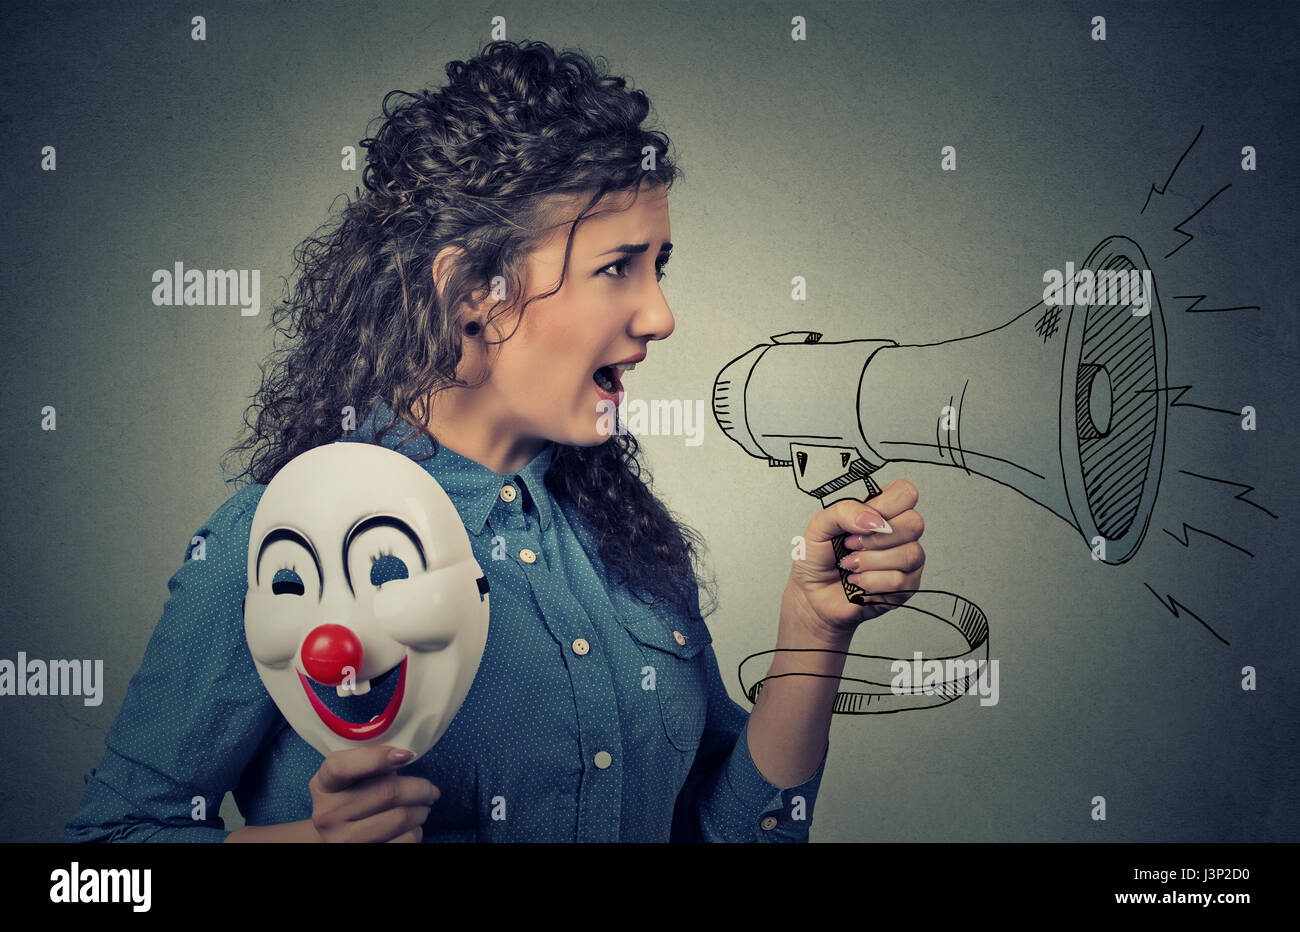 Woman with megaphone and clown mask screaming Stock Photo